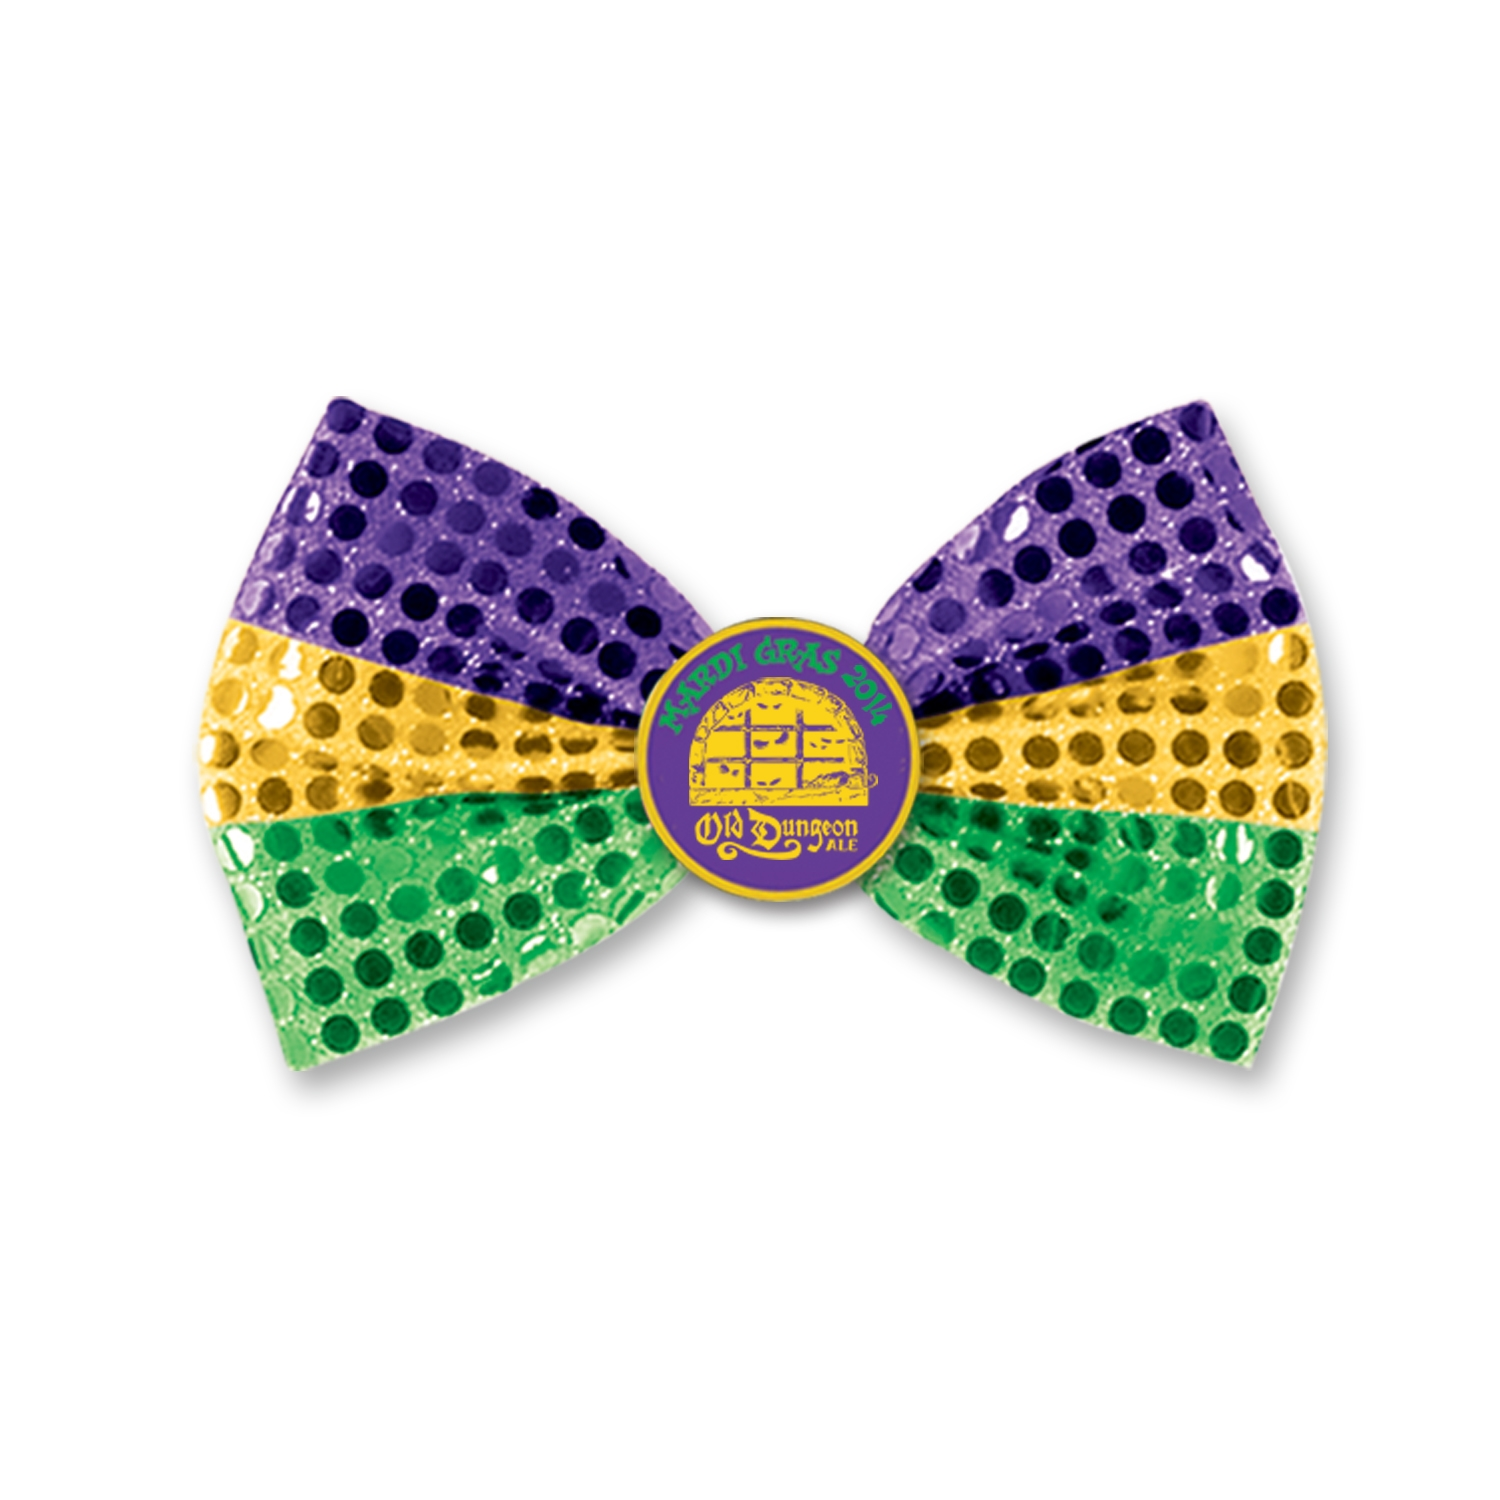 Custom Mardi Gras Glitz N Gleam Bow Tie Custom Mardi Gras Glitz N Gleam Bow Tie, custom, mardi gras, bow tie, party favor, green, gold, purple, wholesale, inexpensive, bulk